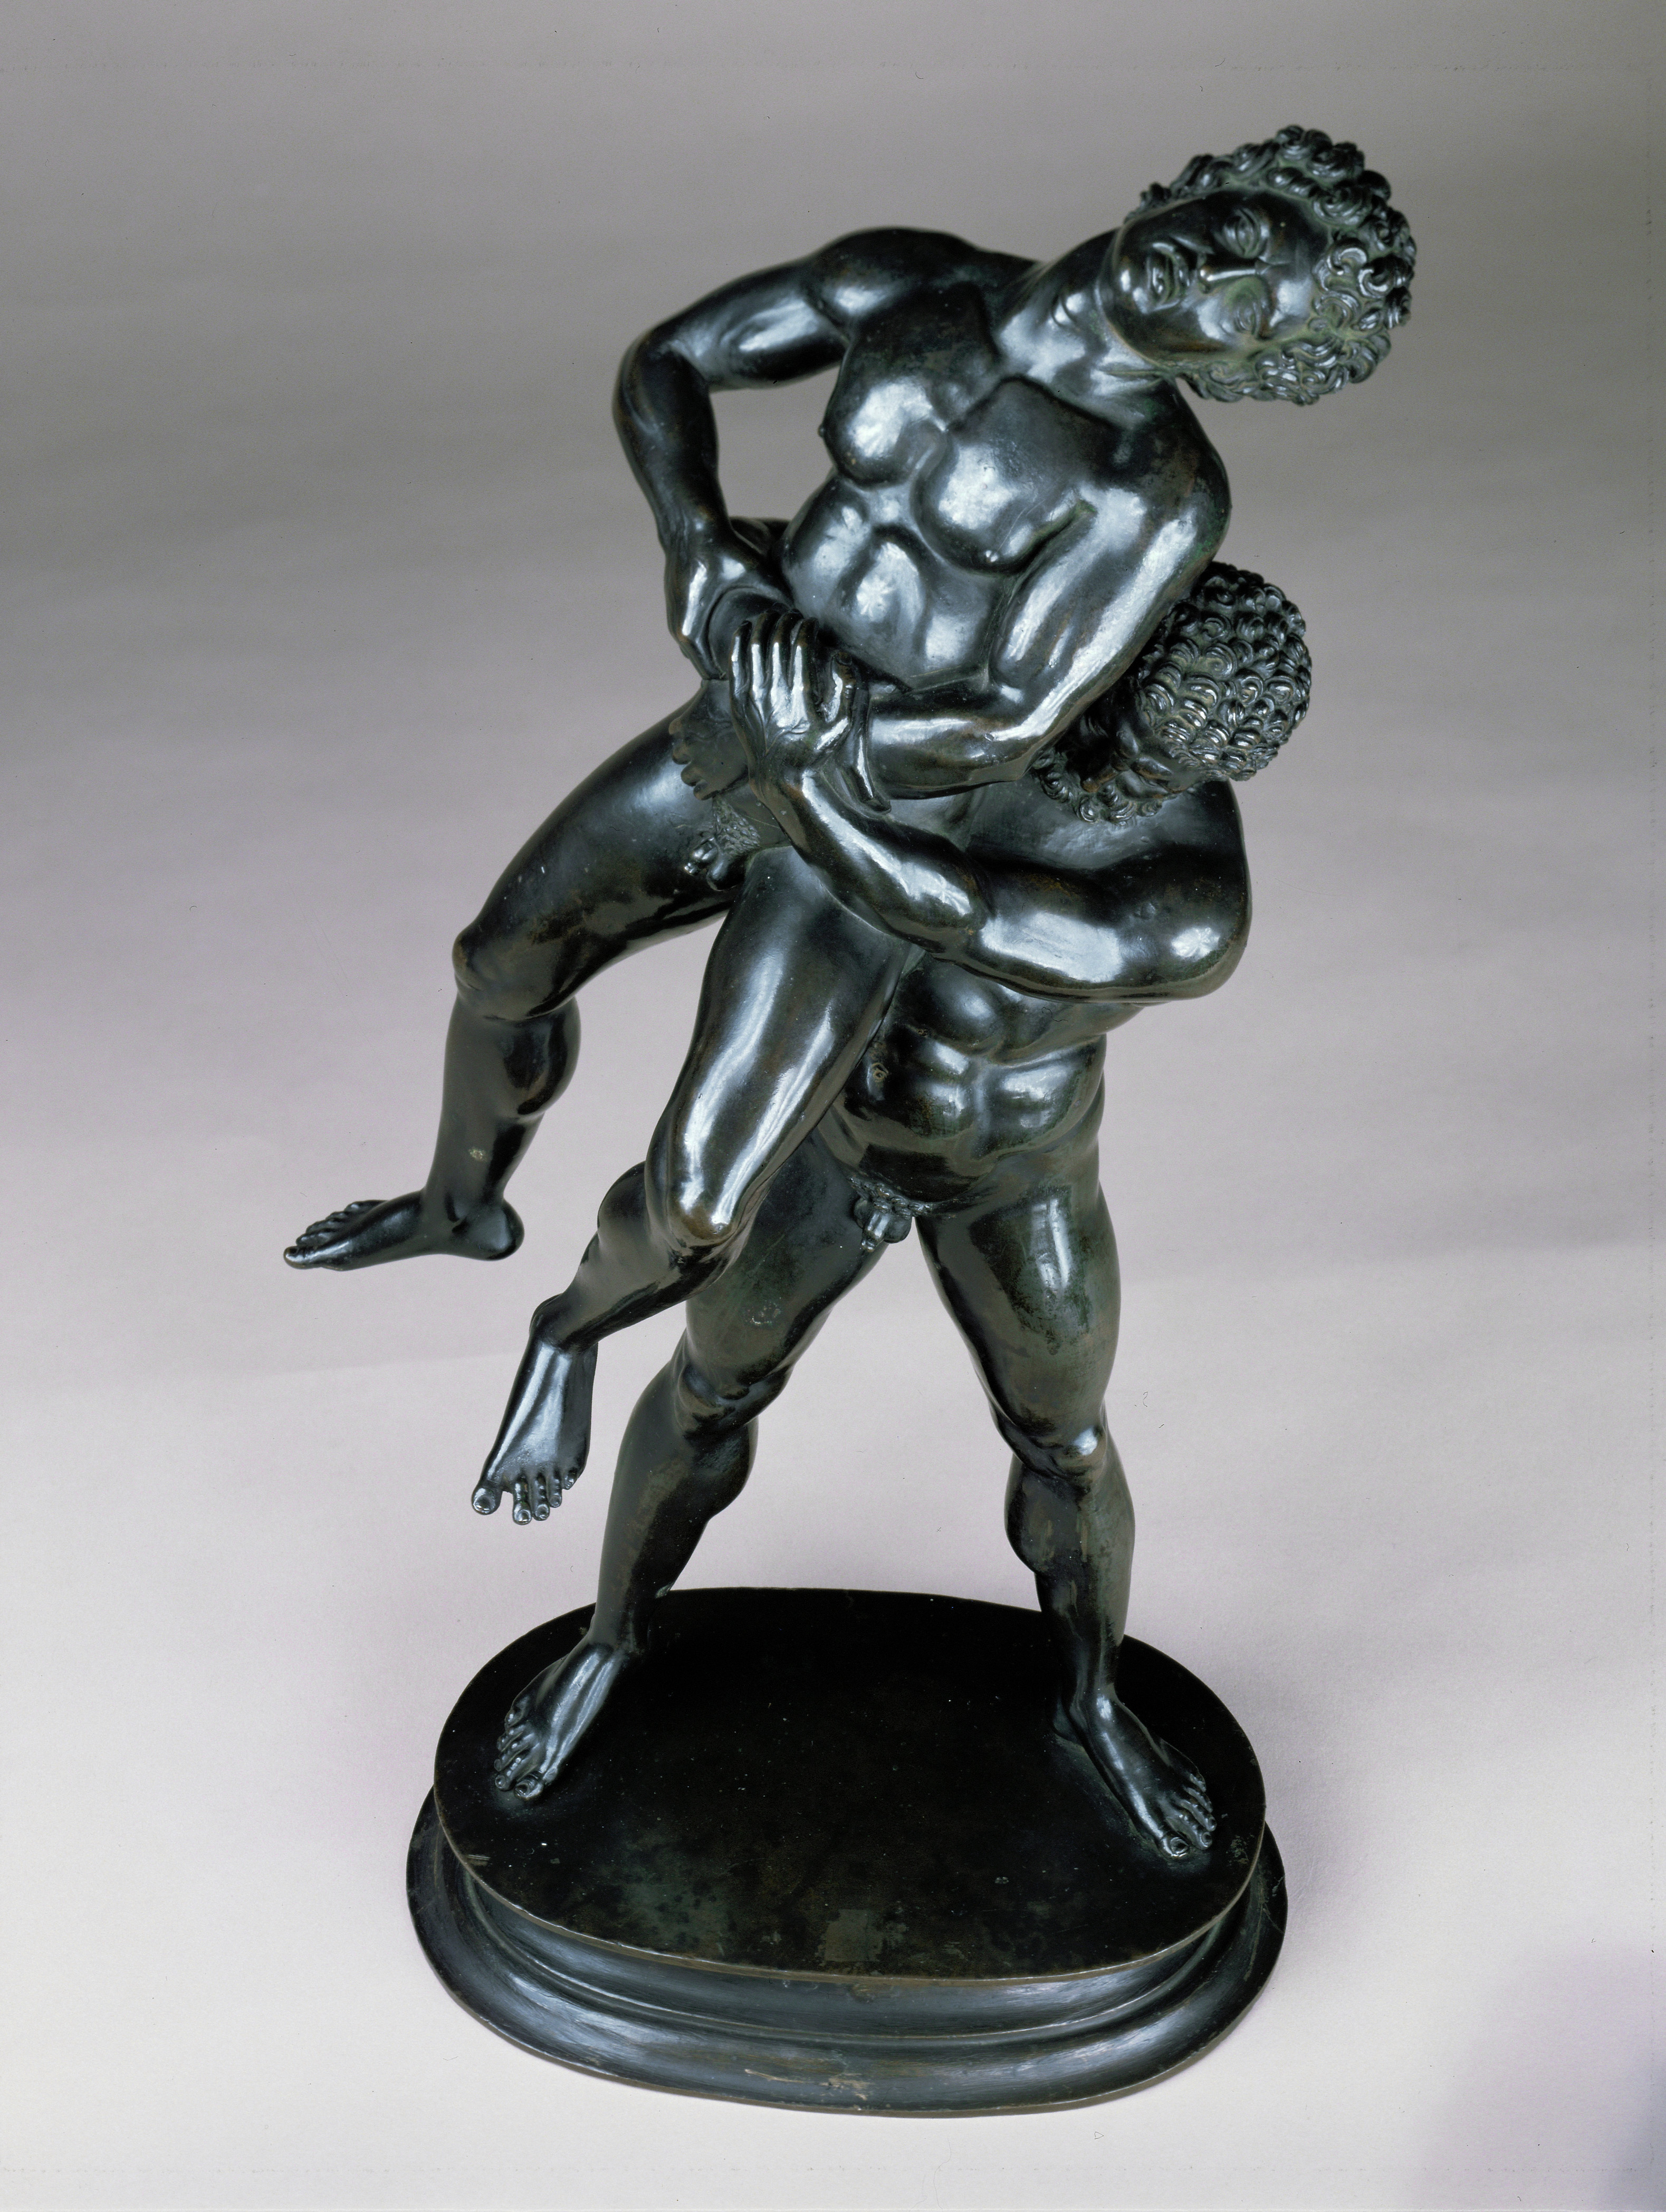 Antico<br /><i>Hercules and Antaeus</i>, 1519<br />Bronze, h. with base 39.6 cm (15 5/8 in.)<br />Kunsthistorisches Museum, Vienna, Kunstkammer<br />Erich Lessing/Art Resource, NY